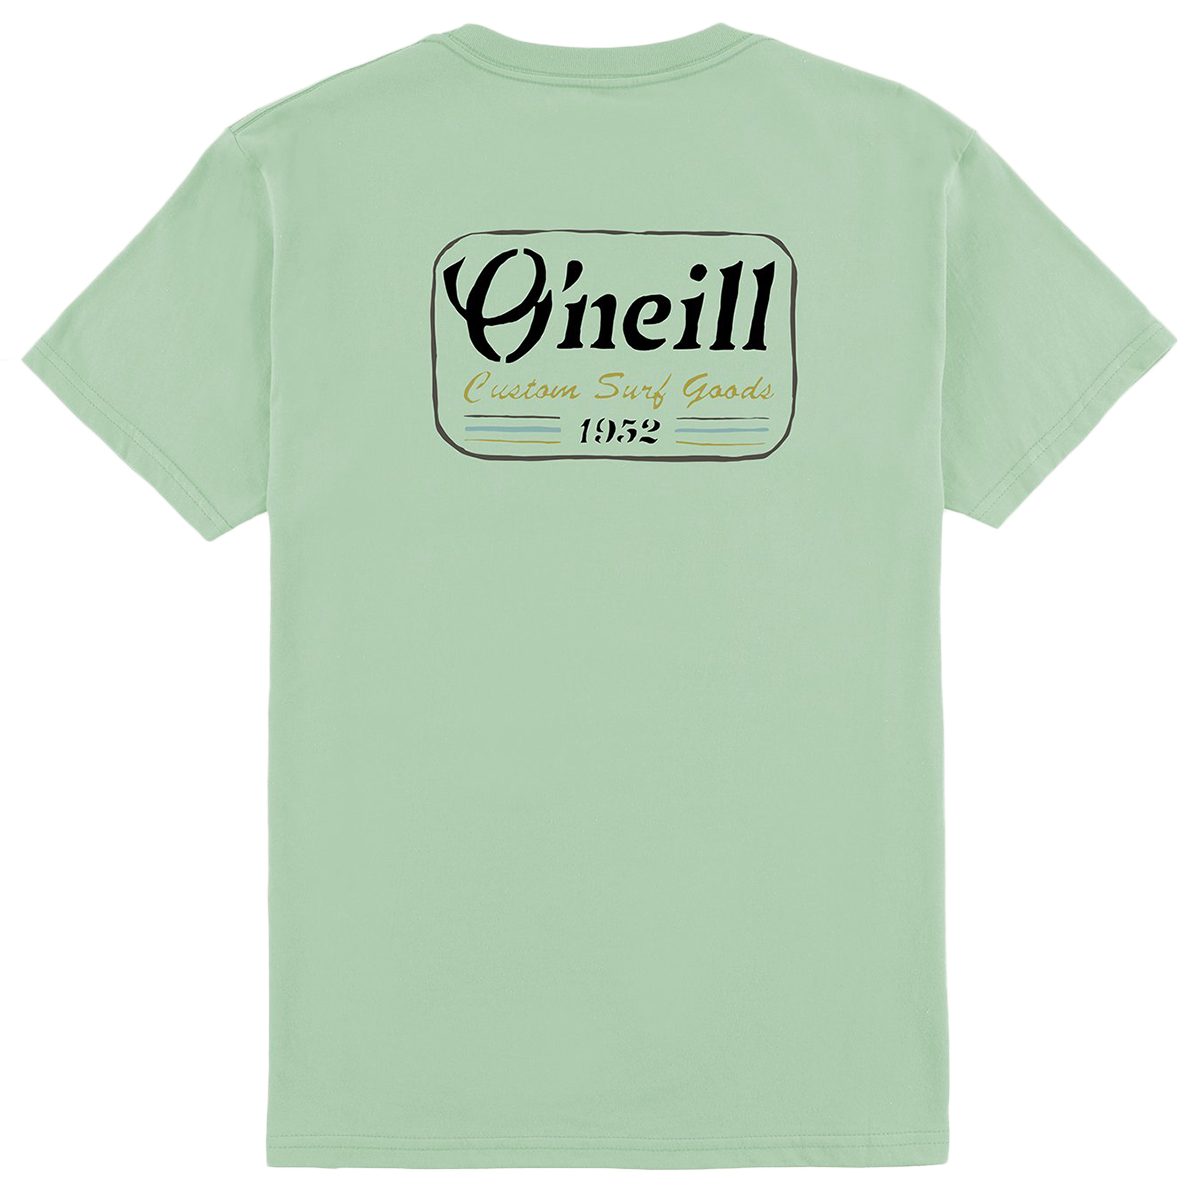 O'neill Men's Short-Sleeve Cooler Tee - Green, S